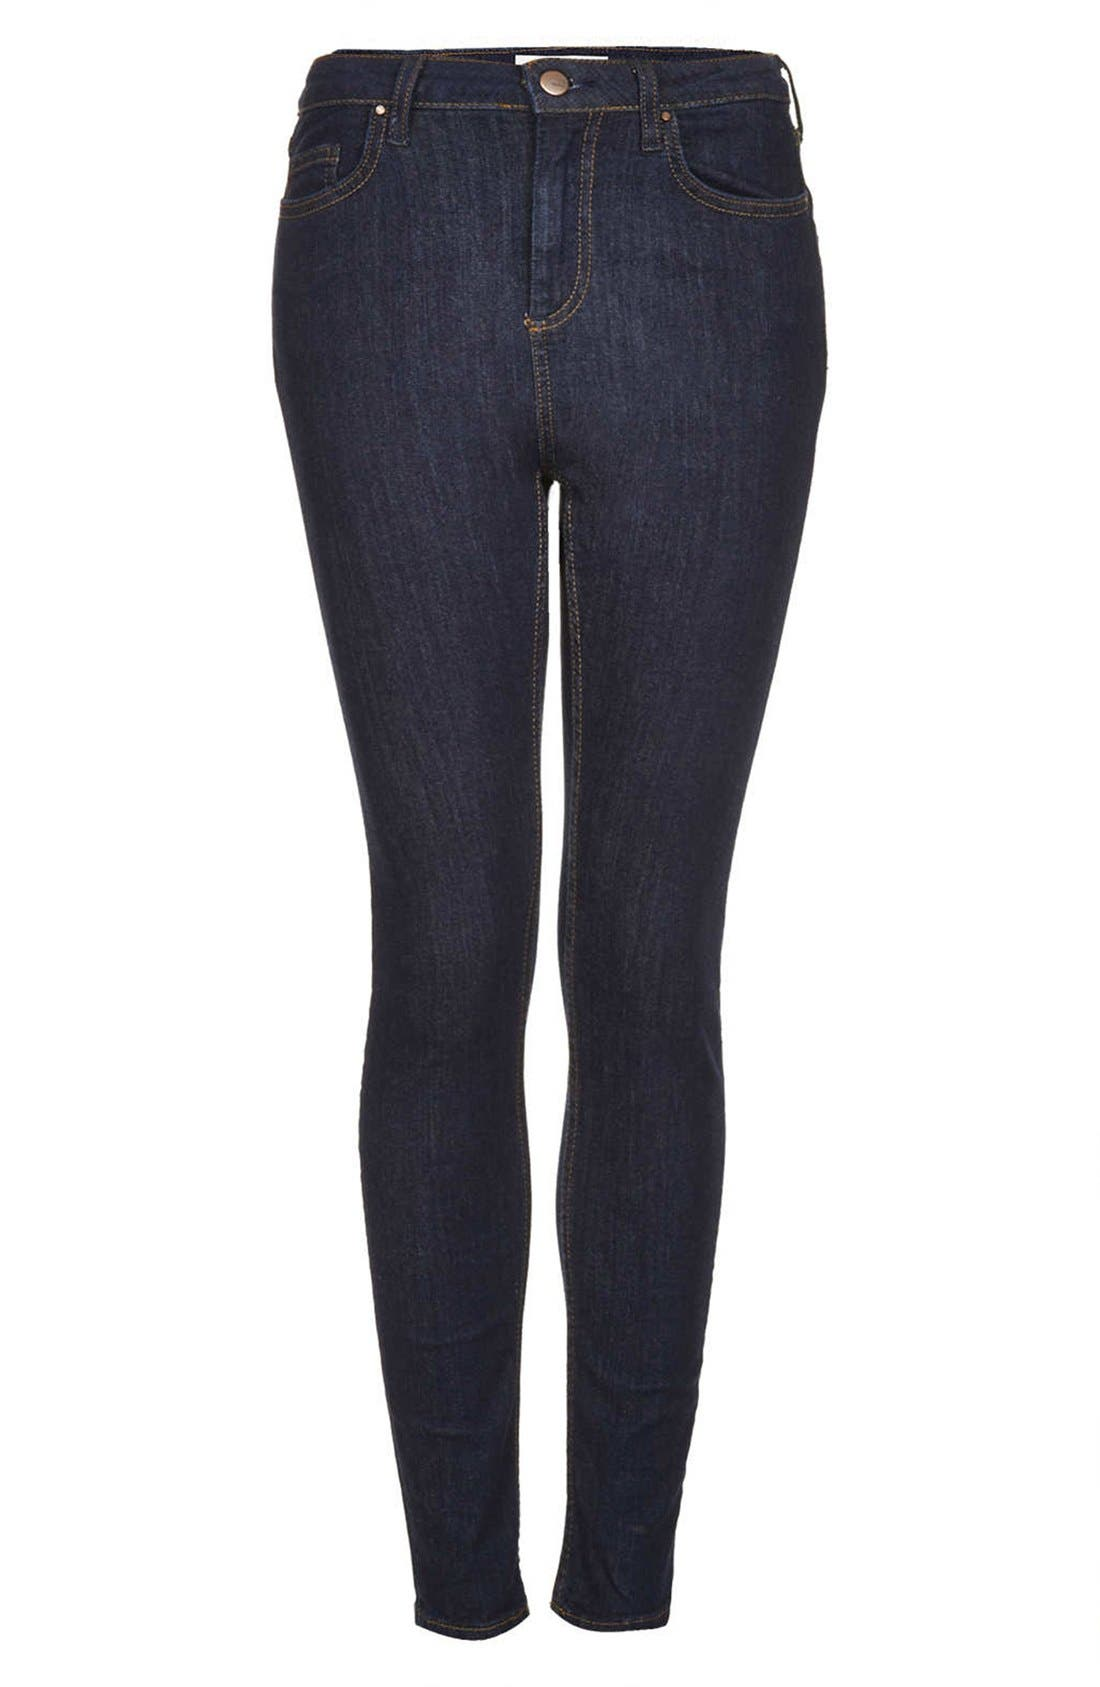 Alternate Image 3  - Topshop Moto 'Jamie' High Rise Skinny Jeans (Blue) (Regular, Short & Long)